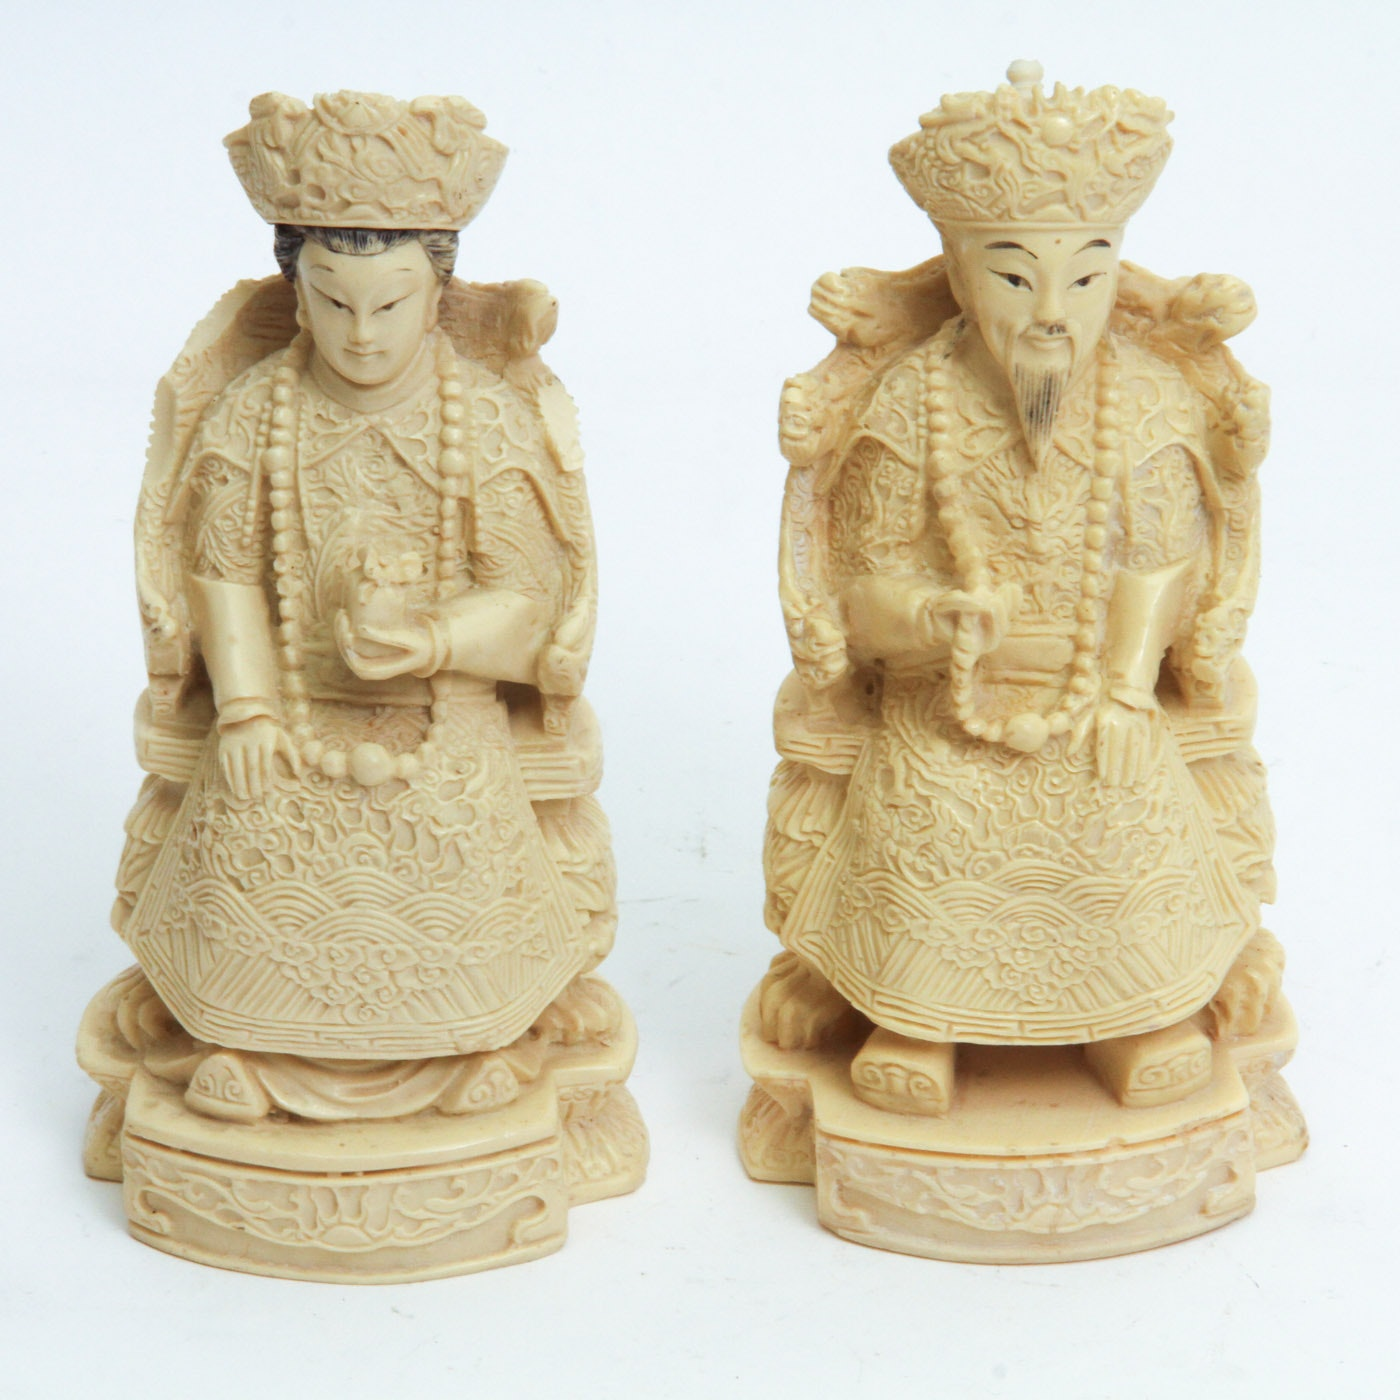 Pair of Relief Chinese Nobility Figurines